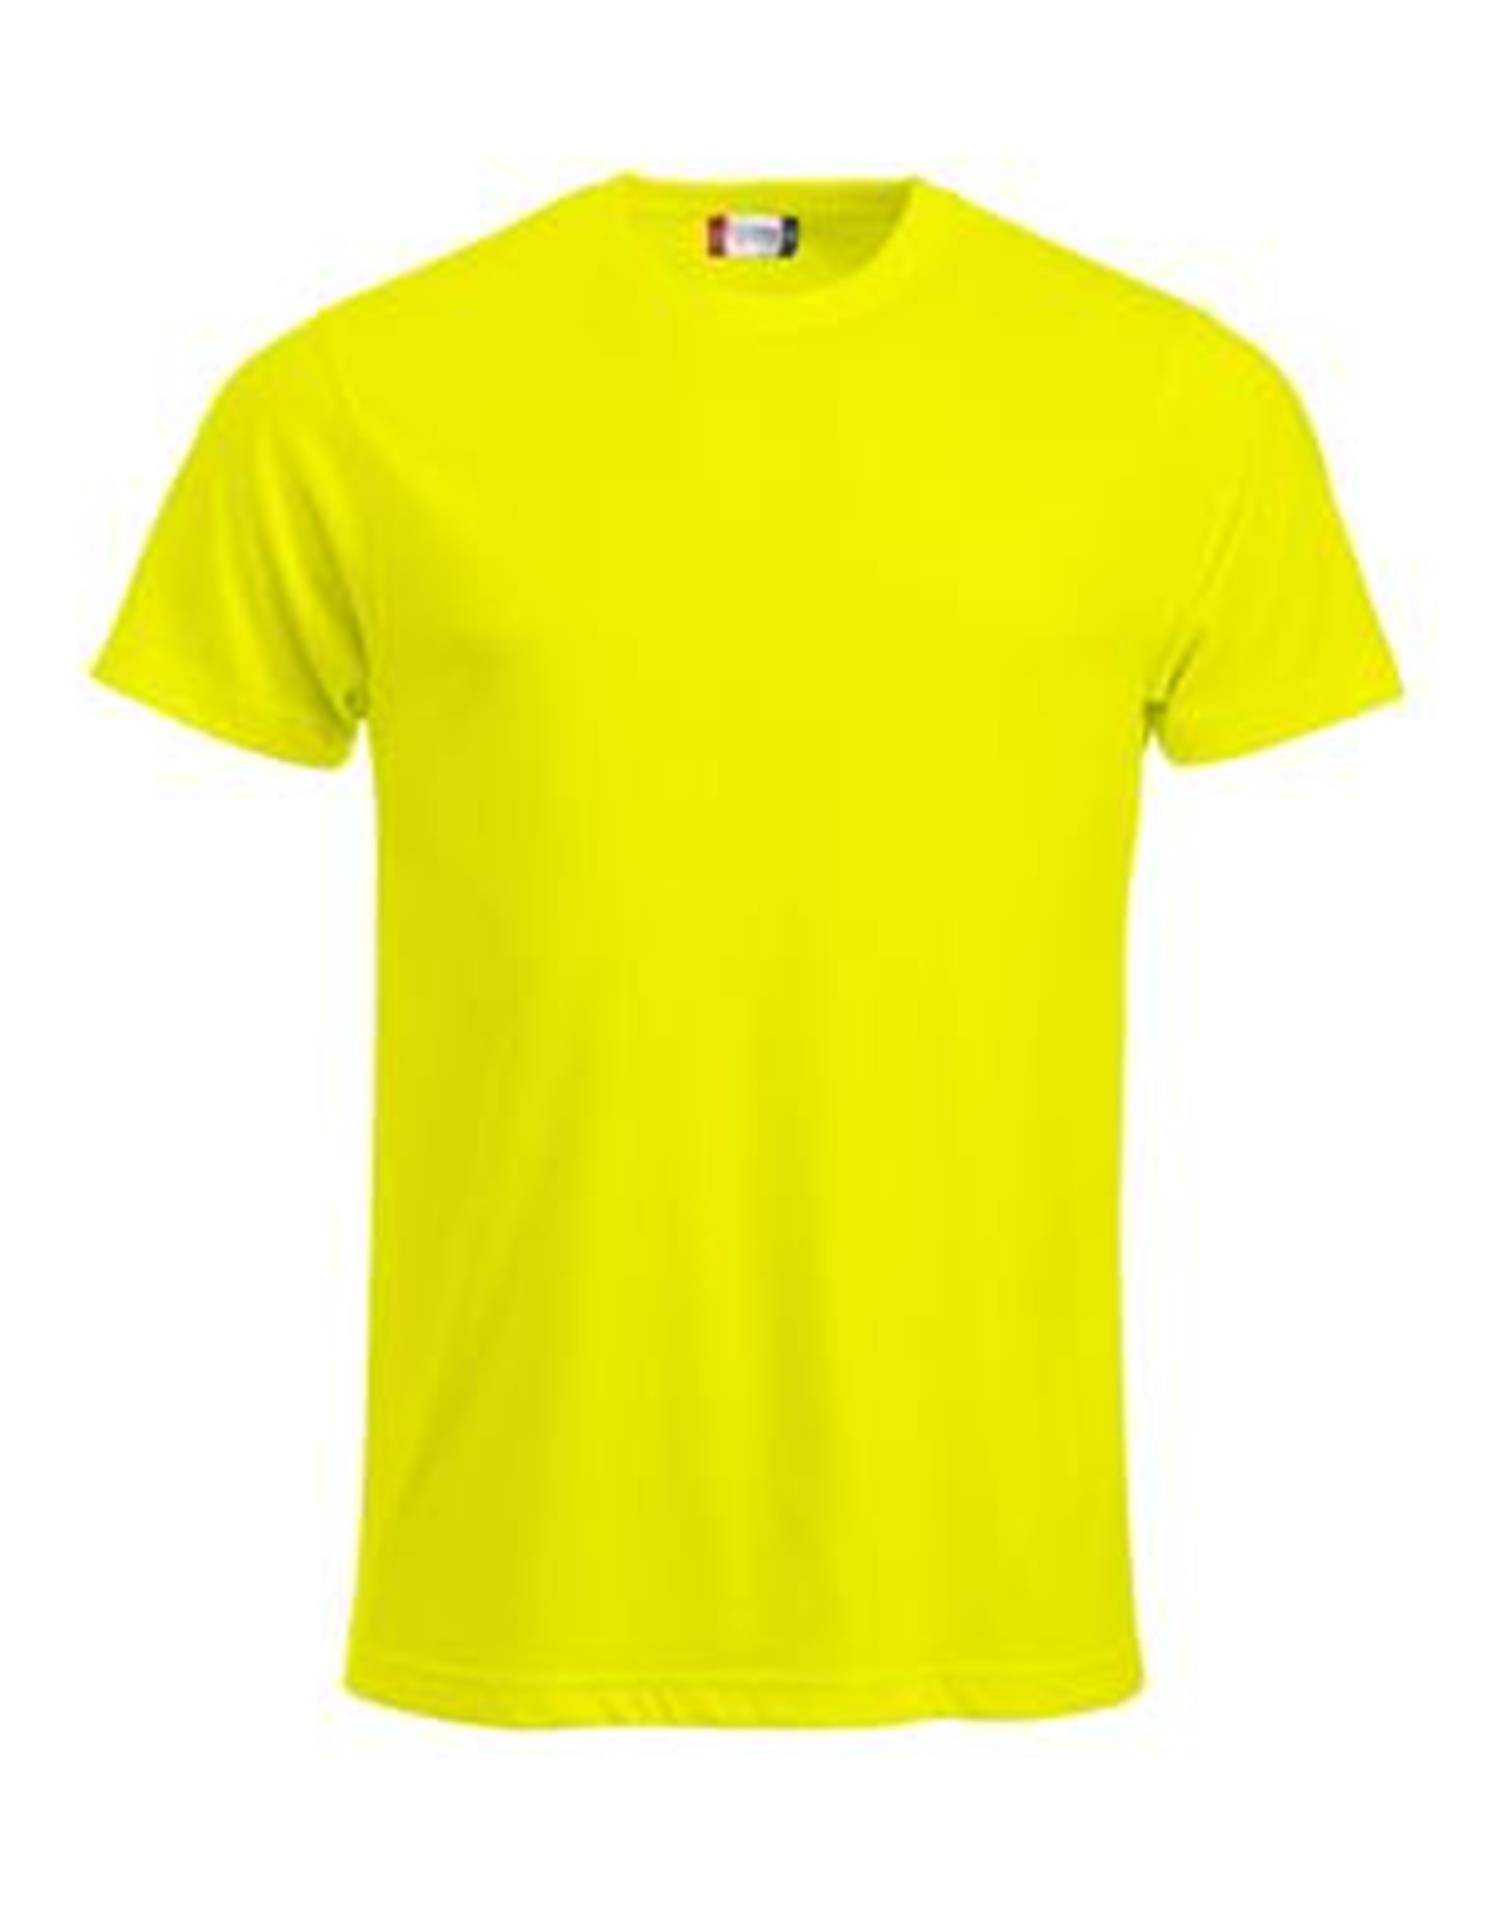 NewWave T-SHIRT 160 gm CLASSIC-T (L - GIALLO HV)